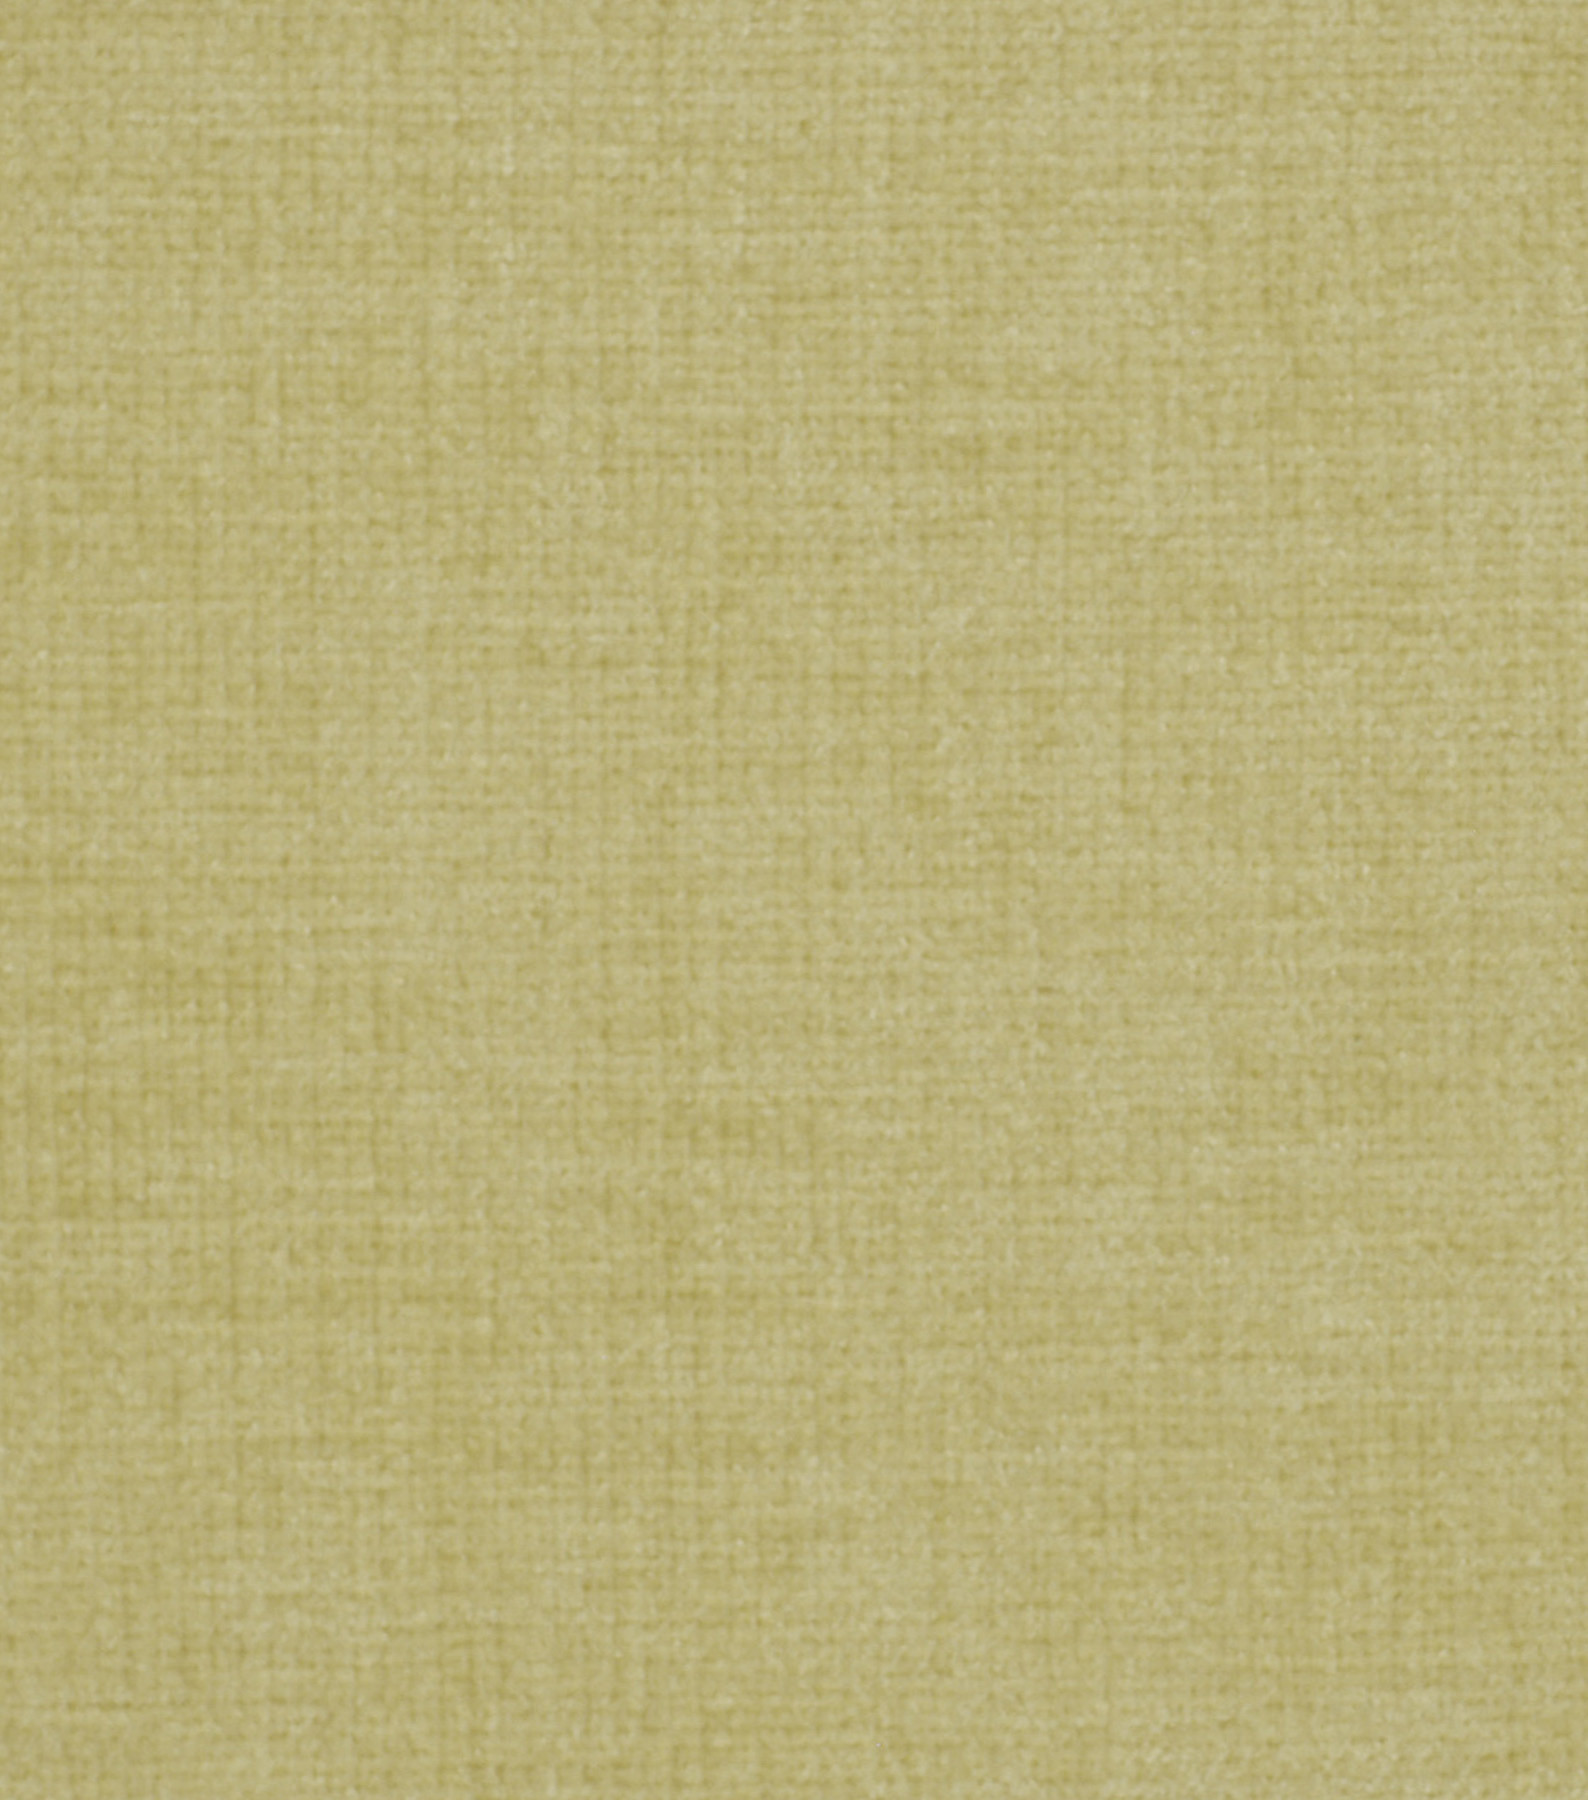 Home Decor 8\u0022x8\u0022 Fabric Swatch-Signature Series Rodez Bisque